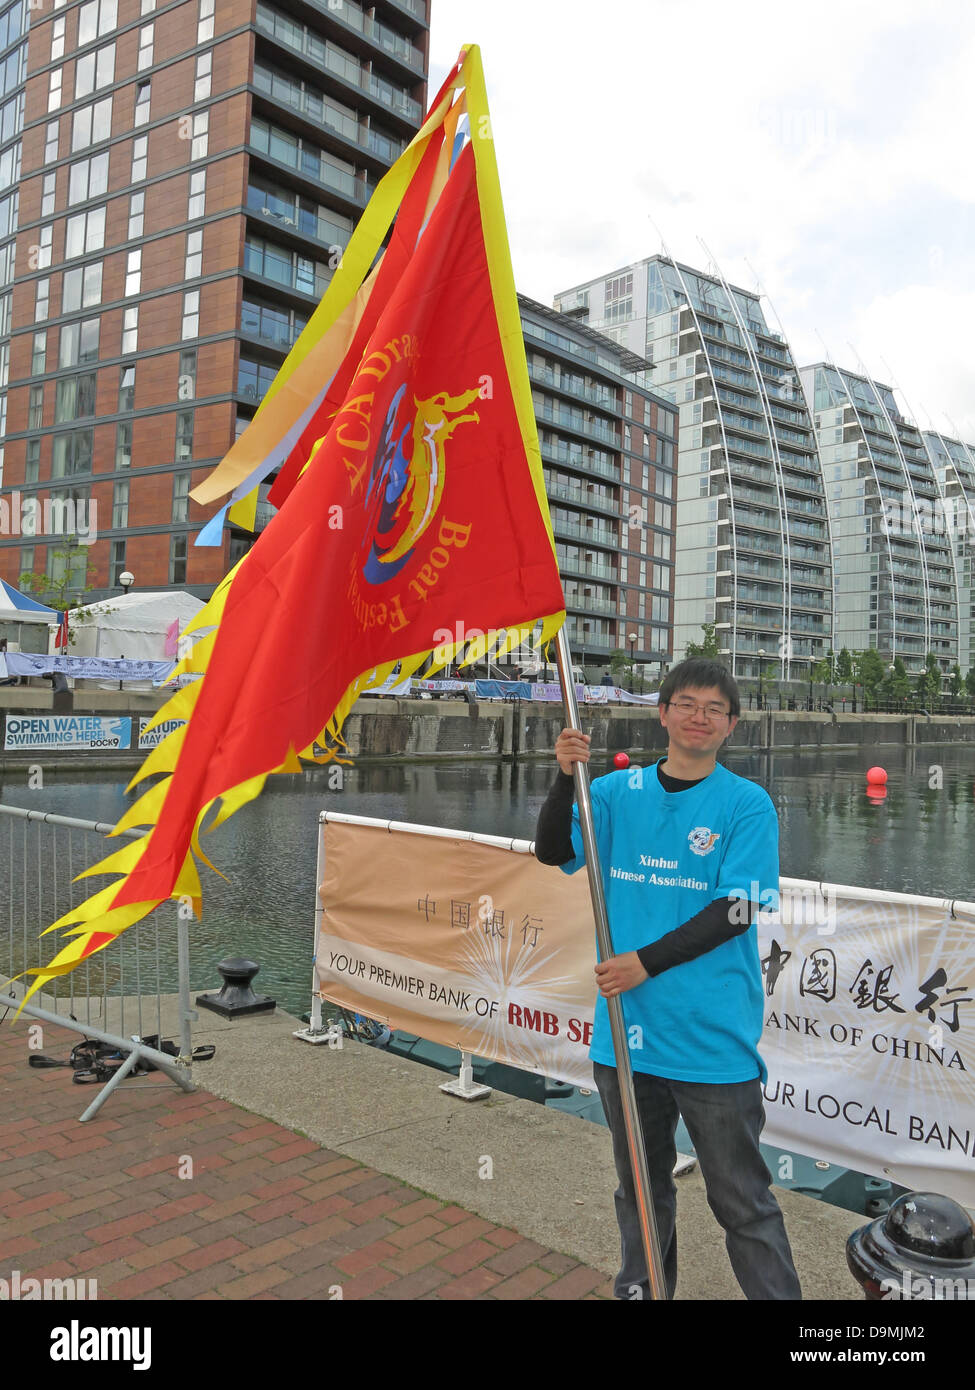 Flying the flag at Salford Quays Salford First Dragon Boat race June 16th 2013, Manchester, UK - Stock Image